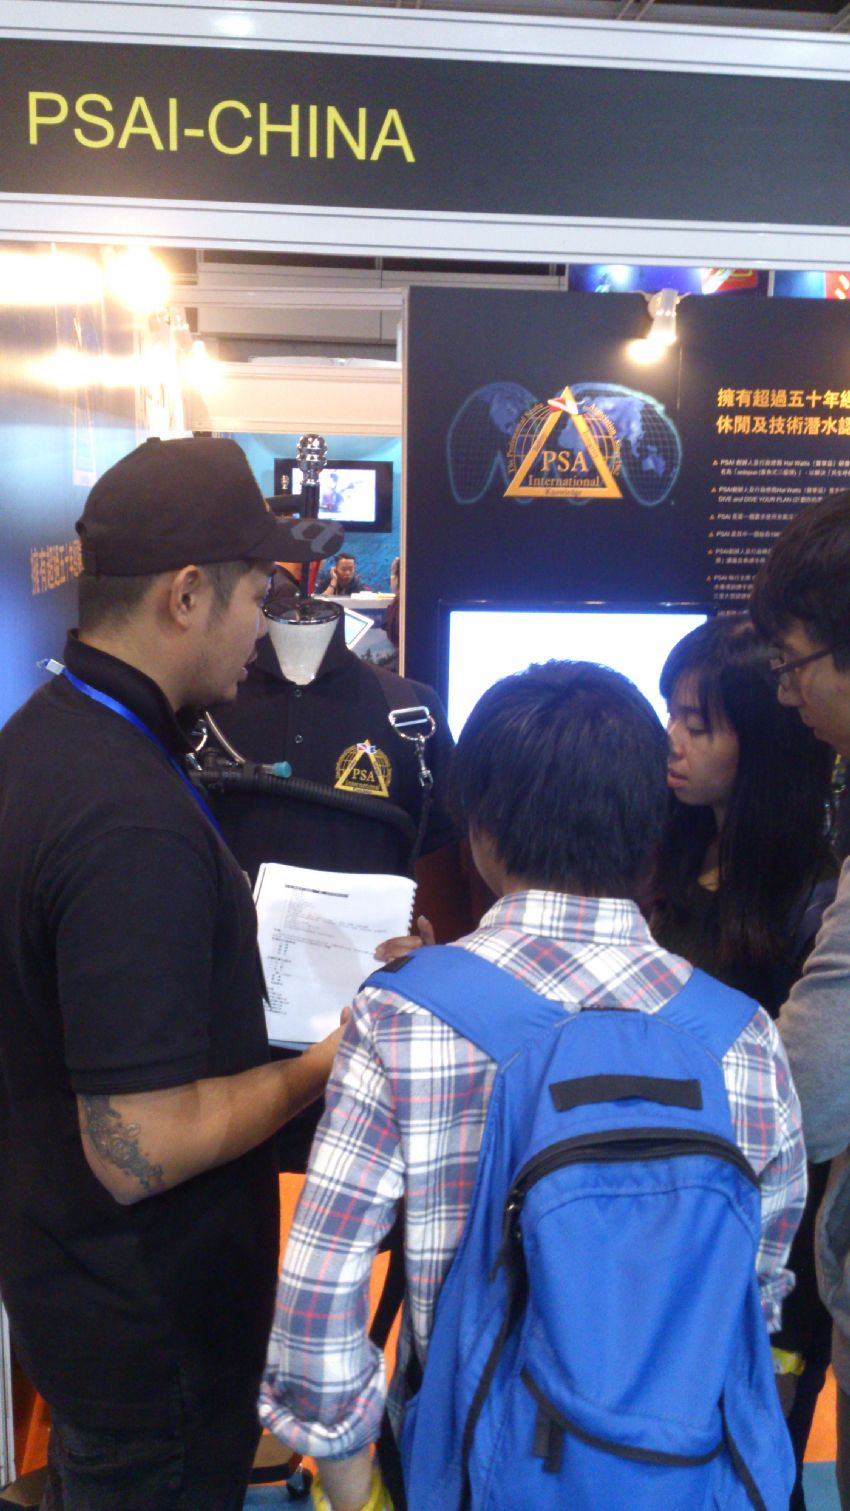 psai china at drt show in hong kong